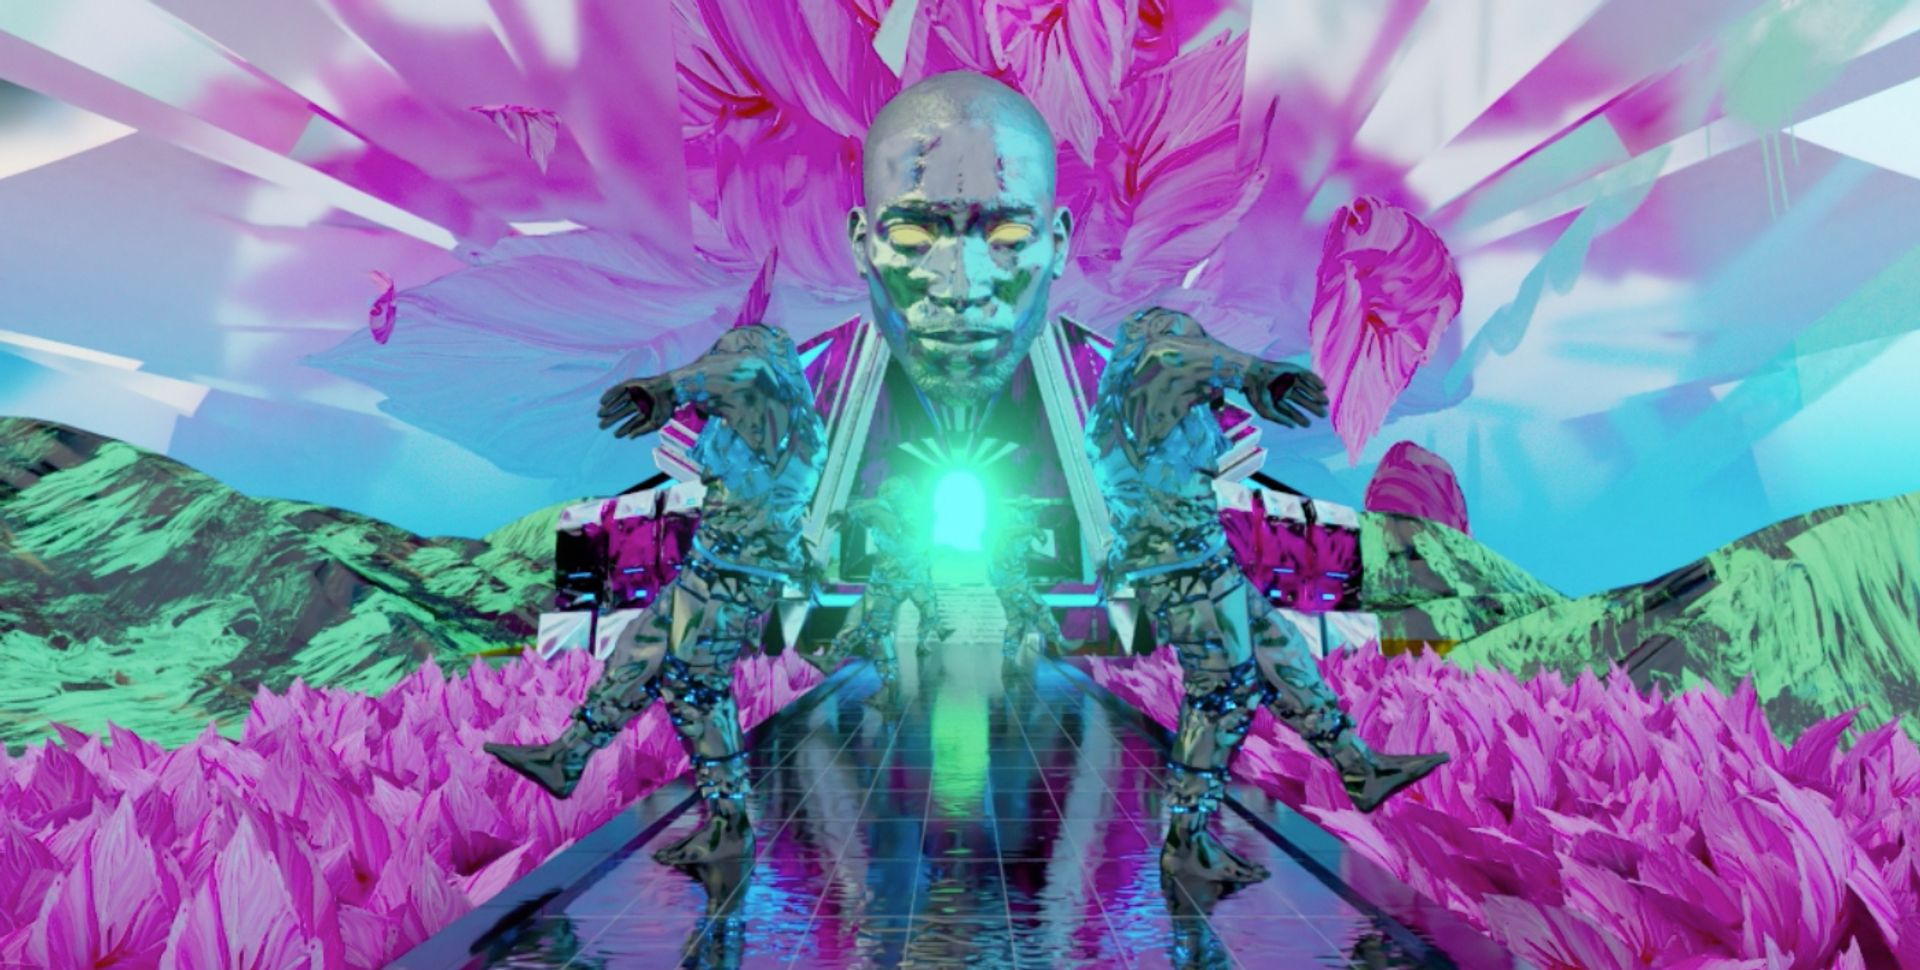 An NFT video still of Present the Future, a collaborative digital artwork by Sassan Behnam-Bakhtiar, Tinie Tempah and Vector Meldrew Courtesy of the artists